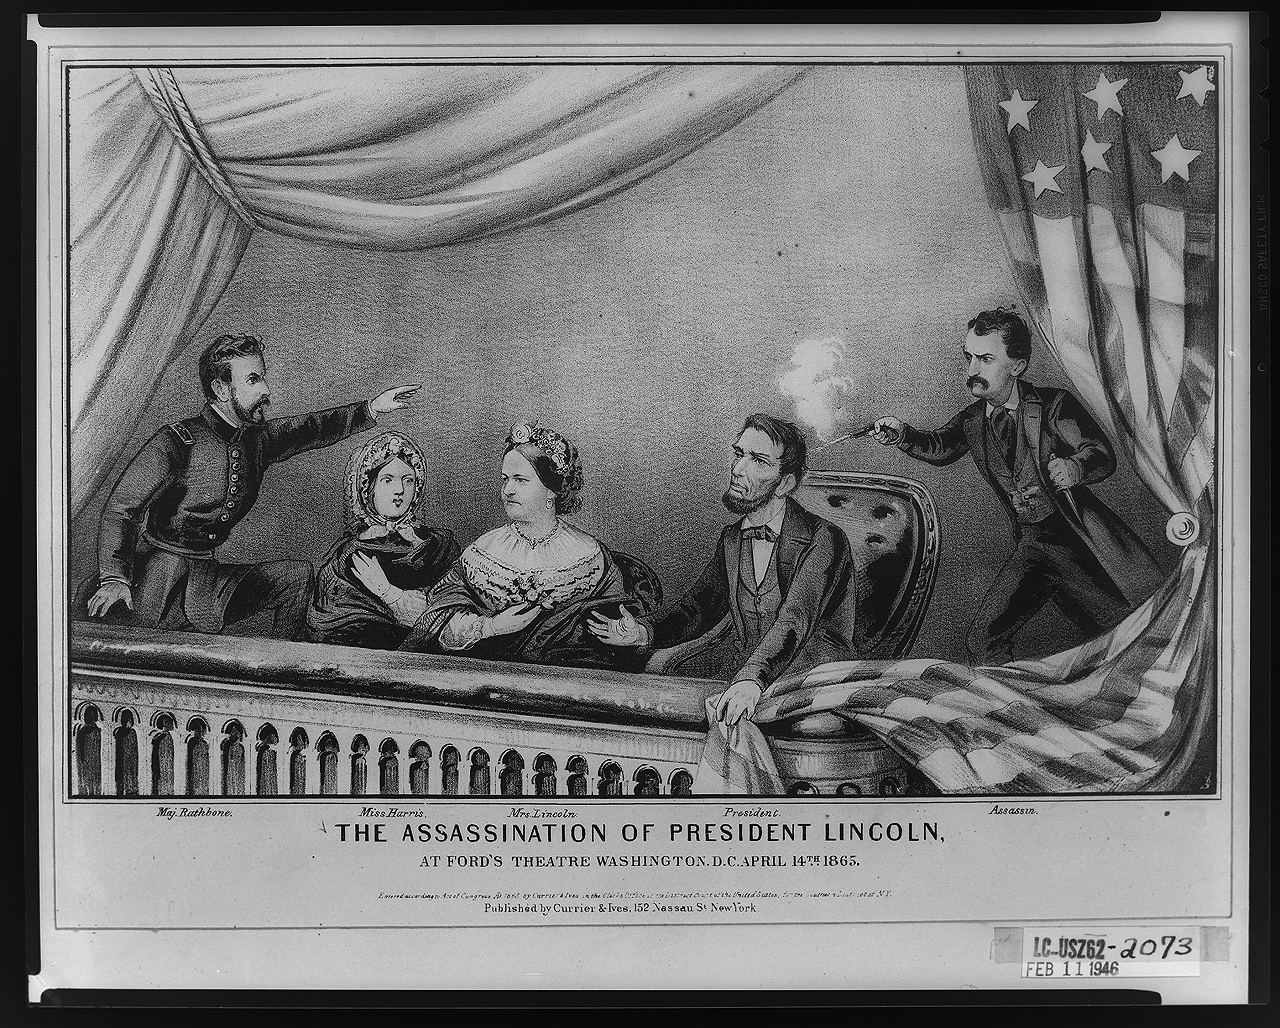 """The assassination of President Lincoln at Ford's Theatre von Currier & Ives [Public domain], via Wikimedia Commons"""